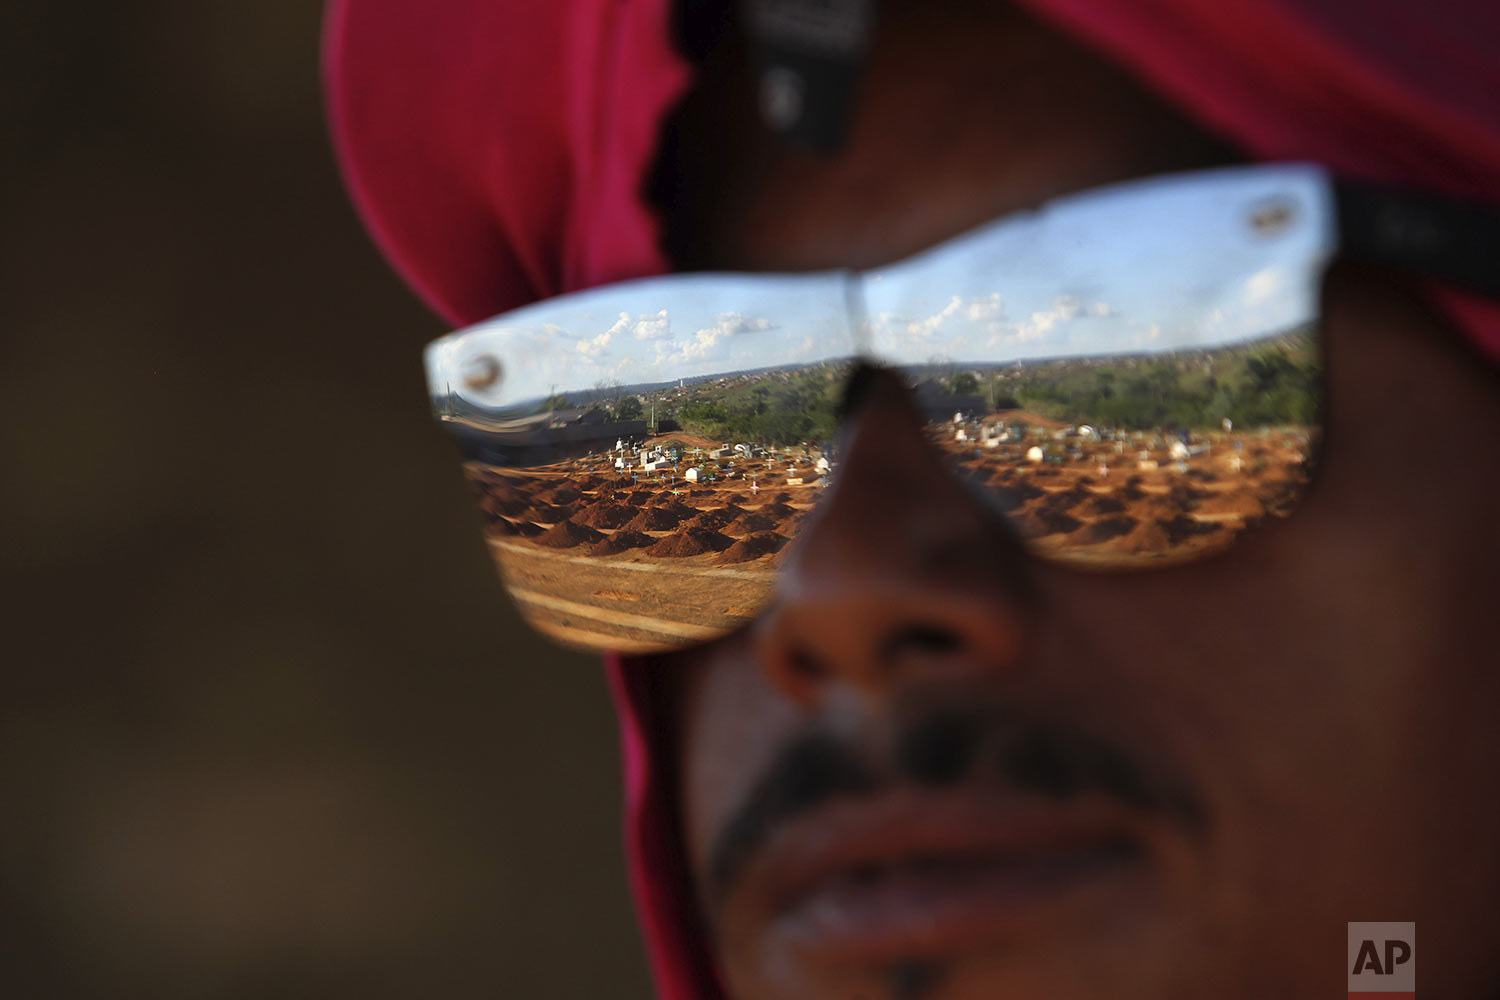 The graves where a number of inmates that where killed in a recent prison riot are to buried, are reflected on the sun glasses of a cemetery employee, in Altamira, Para state, Brazil, Thursday, Aug. 1, 2019. At least 58 prisoners were killed by other inmates during clashes between organized crime groups in the Altamira prison in northern Brazil Monday with 16 of the victims being decapitated, according to prison officials. (AP Photo/Raimundo Pacco)